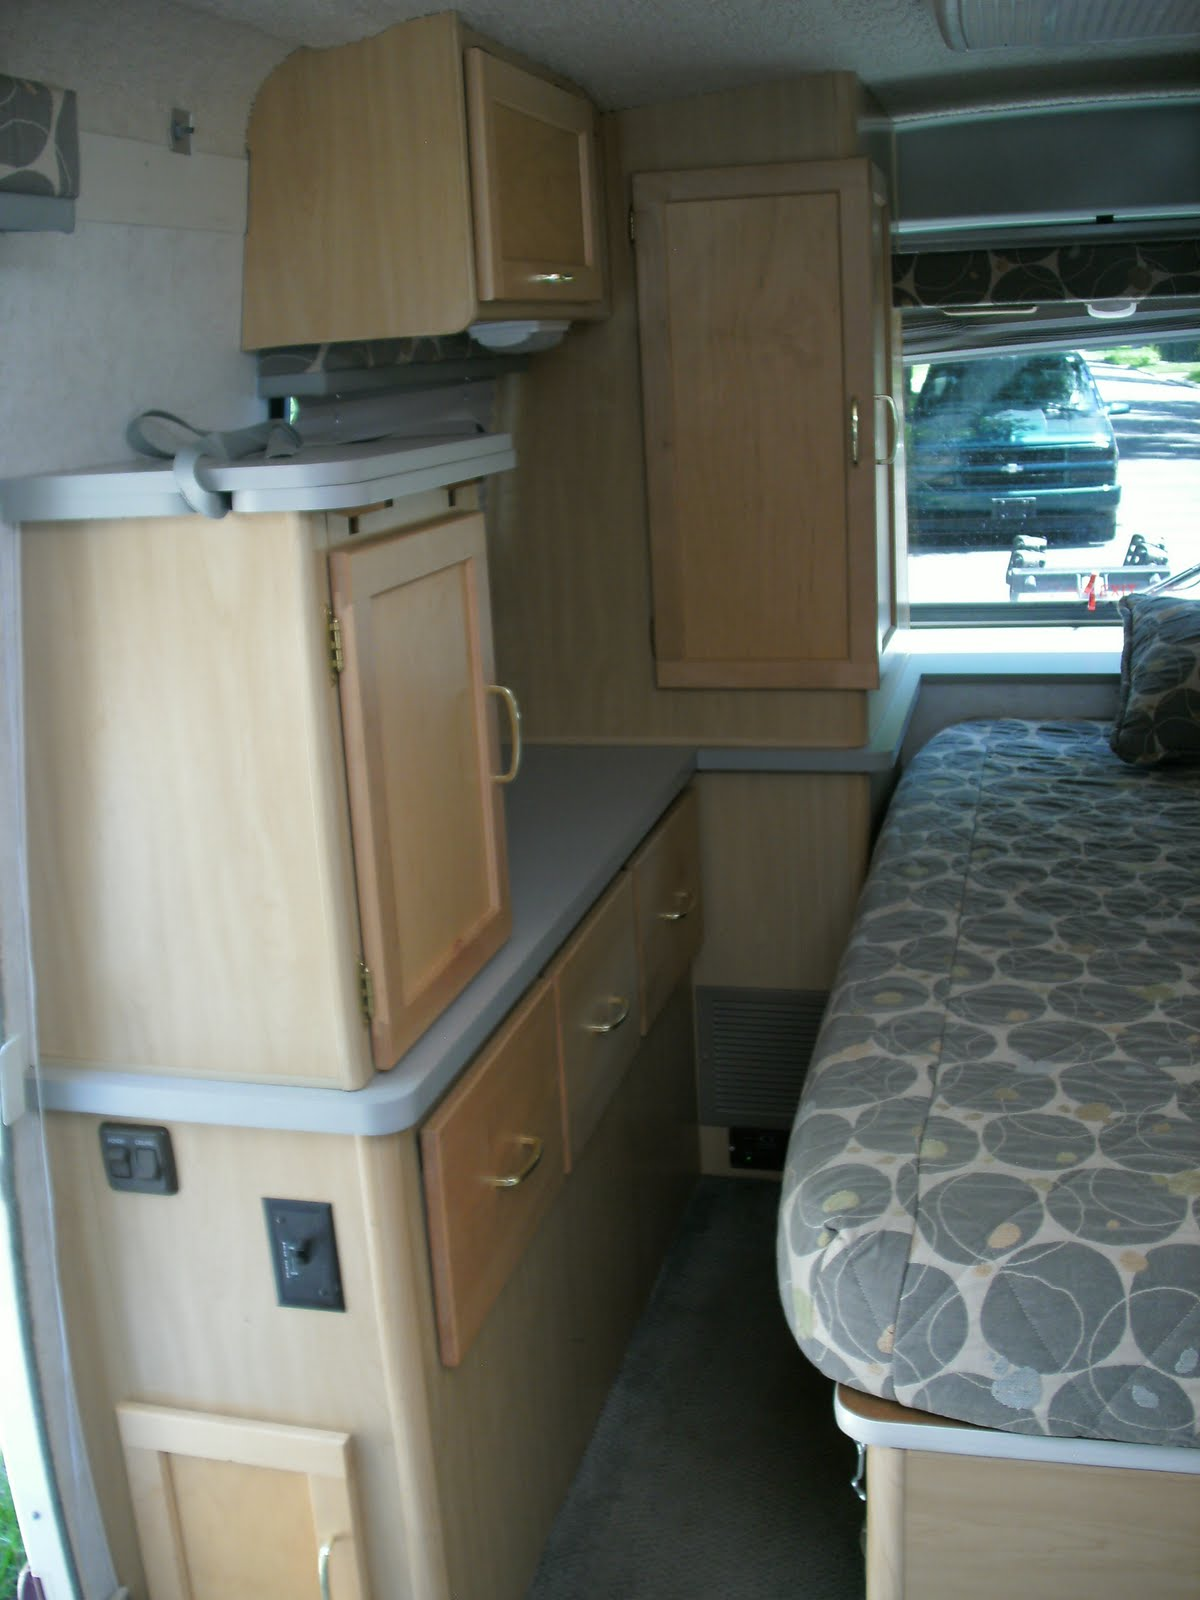 2003 Rialta for Sale: 2003 VW Rialta - Well loved and ...